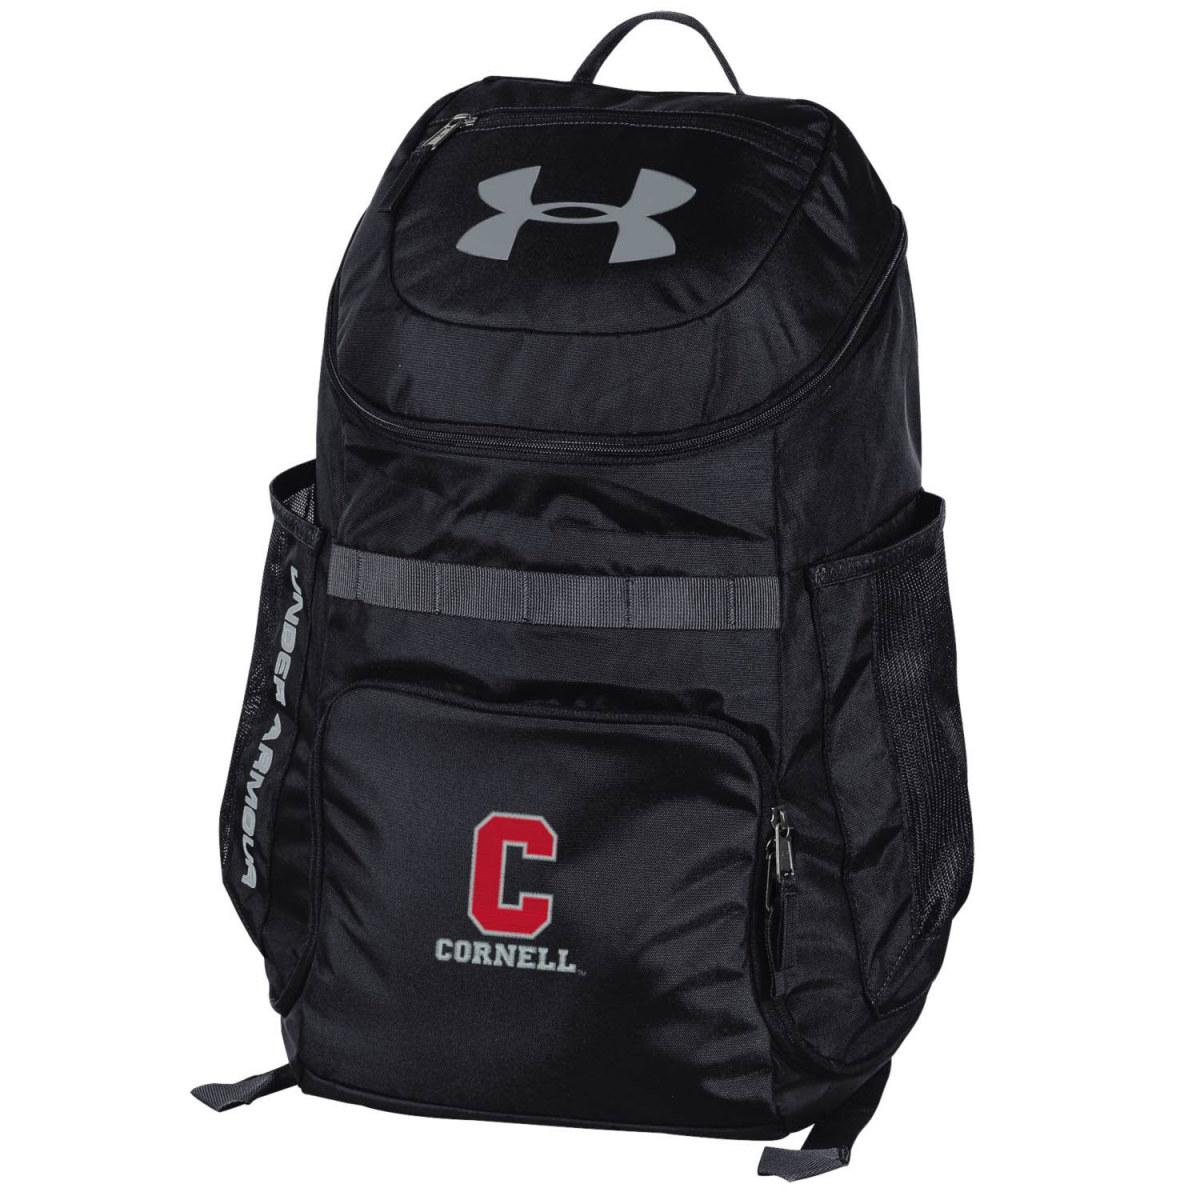 Under Armour Backpack - Black - Up To 15 Inch Laptop 01d3de3a021c3